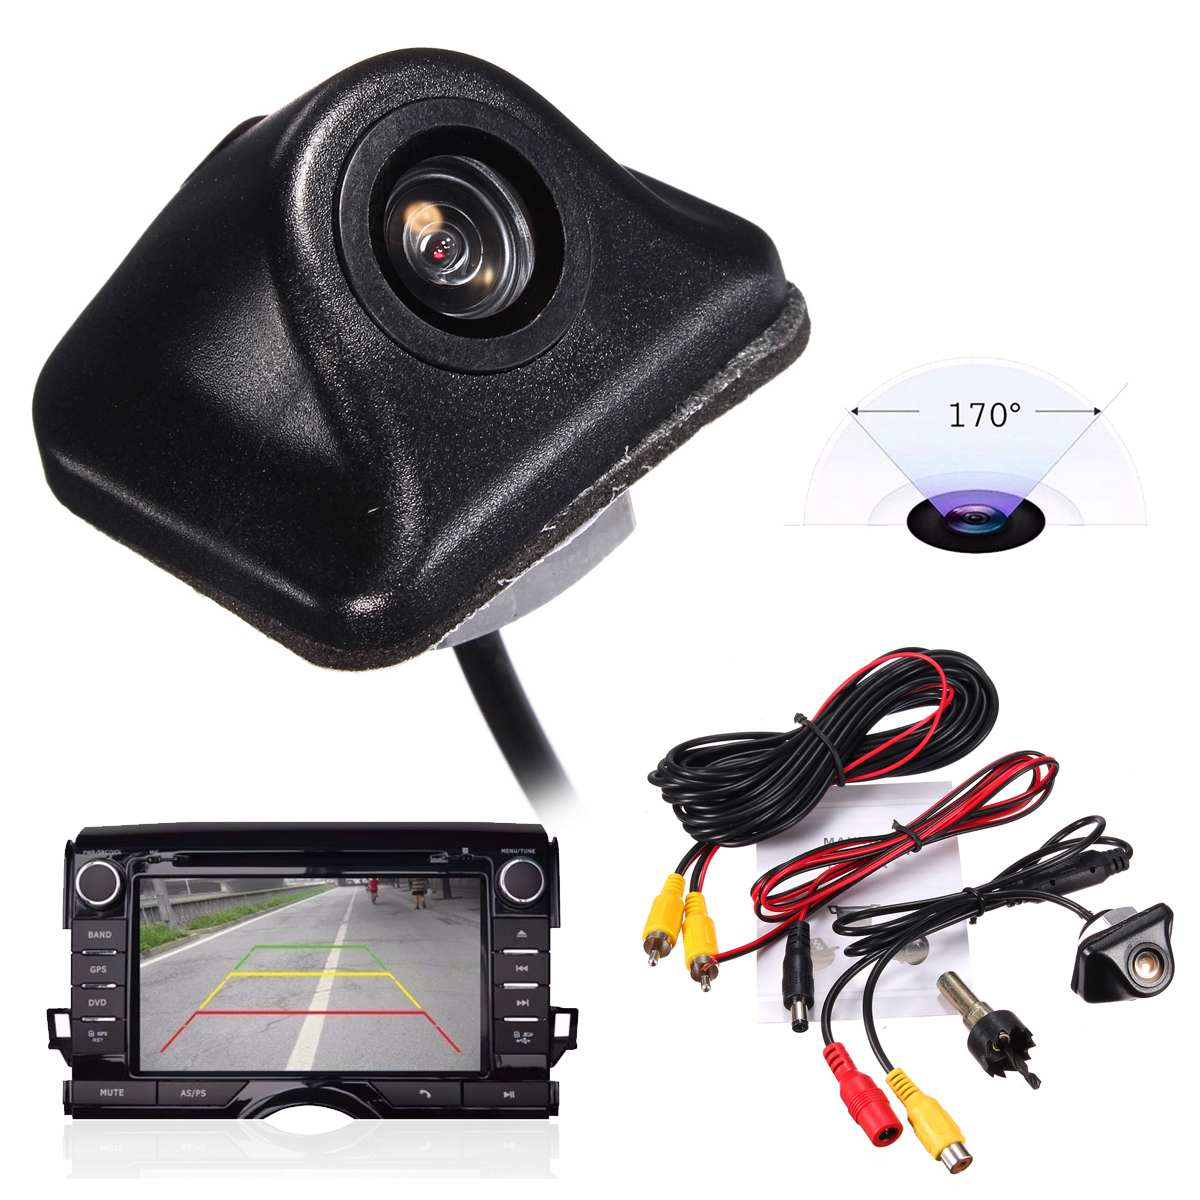 Universal HD Car Rearview Camera Back Up 170 Degree Backup Parking Reverse Camera For Monitor GPS Rear View Camera Waterproof